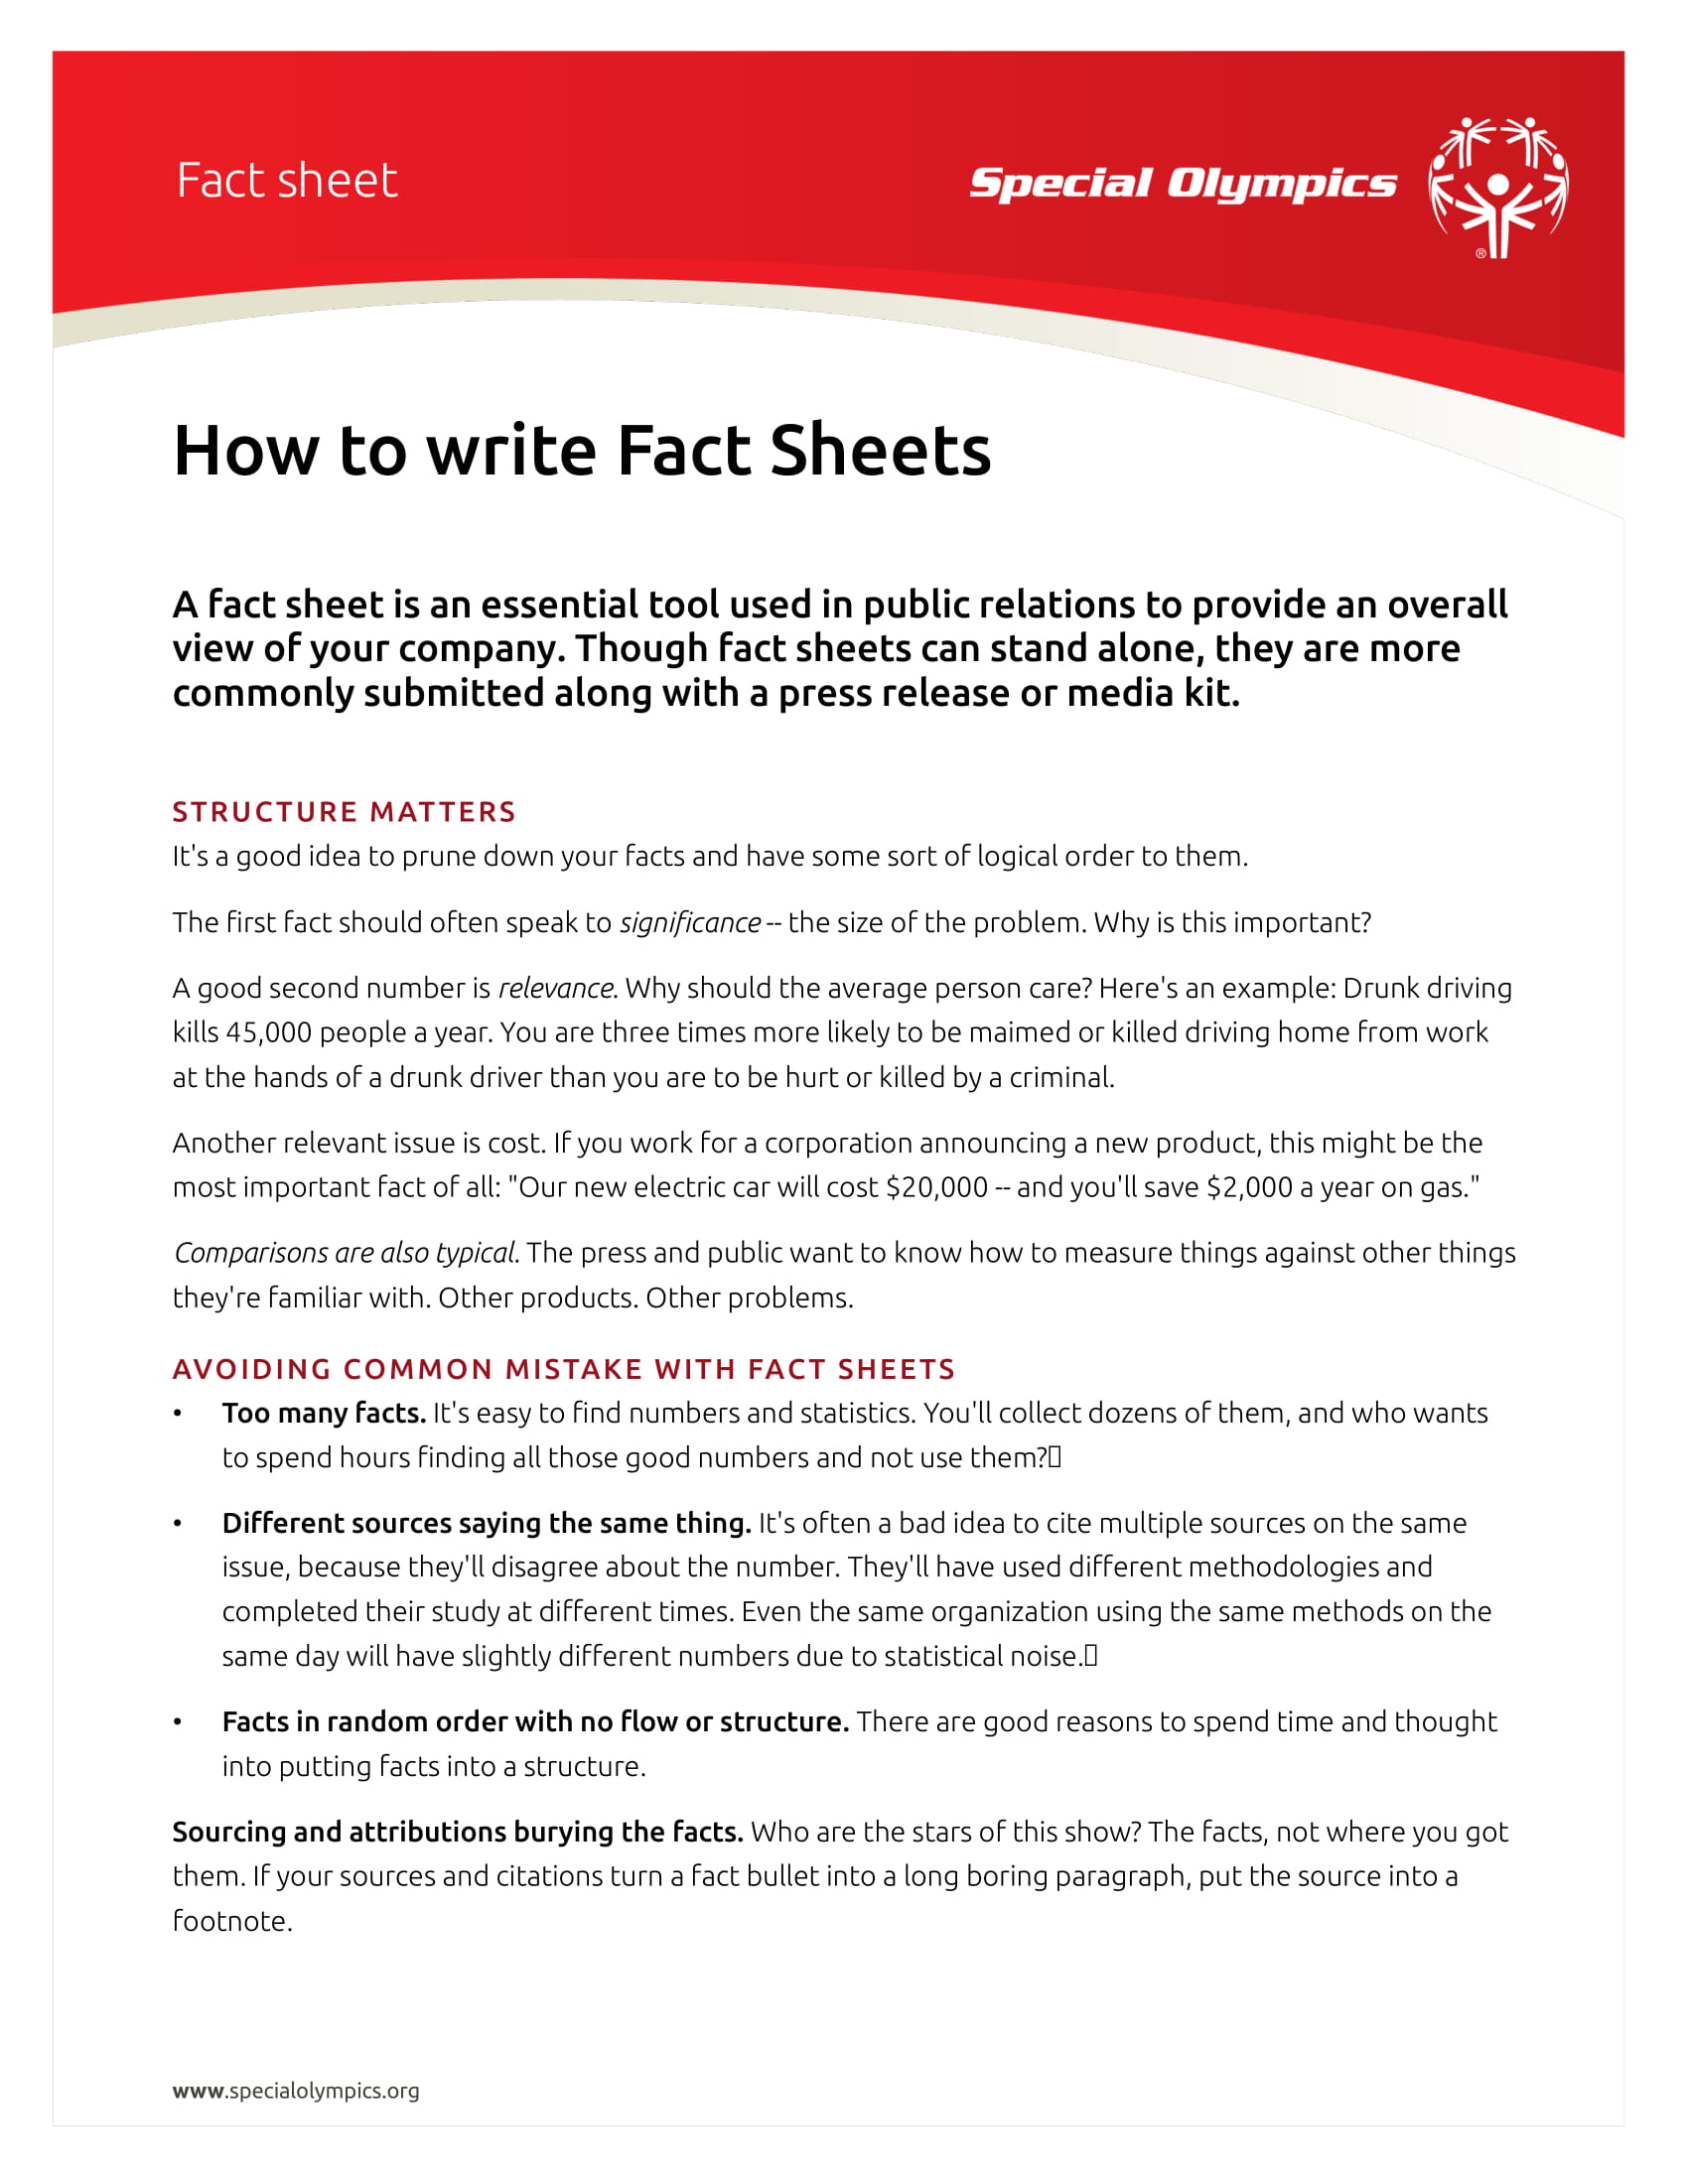 how to produce a fact sheet